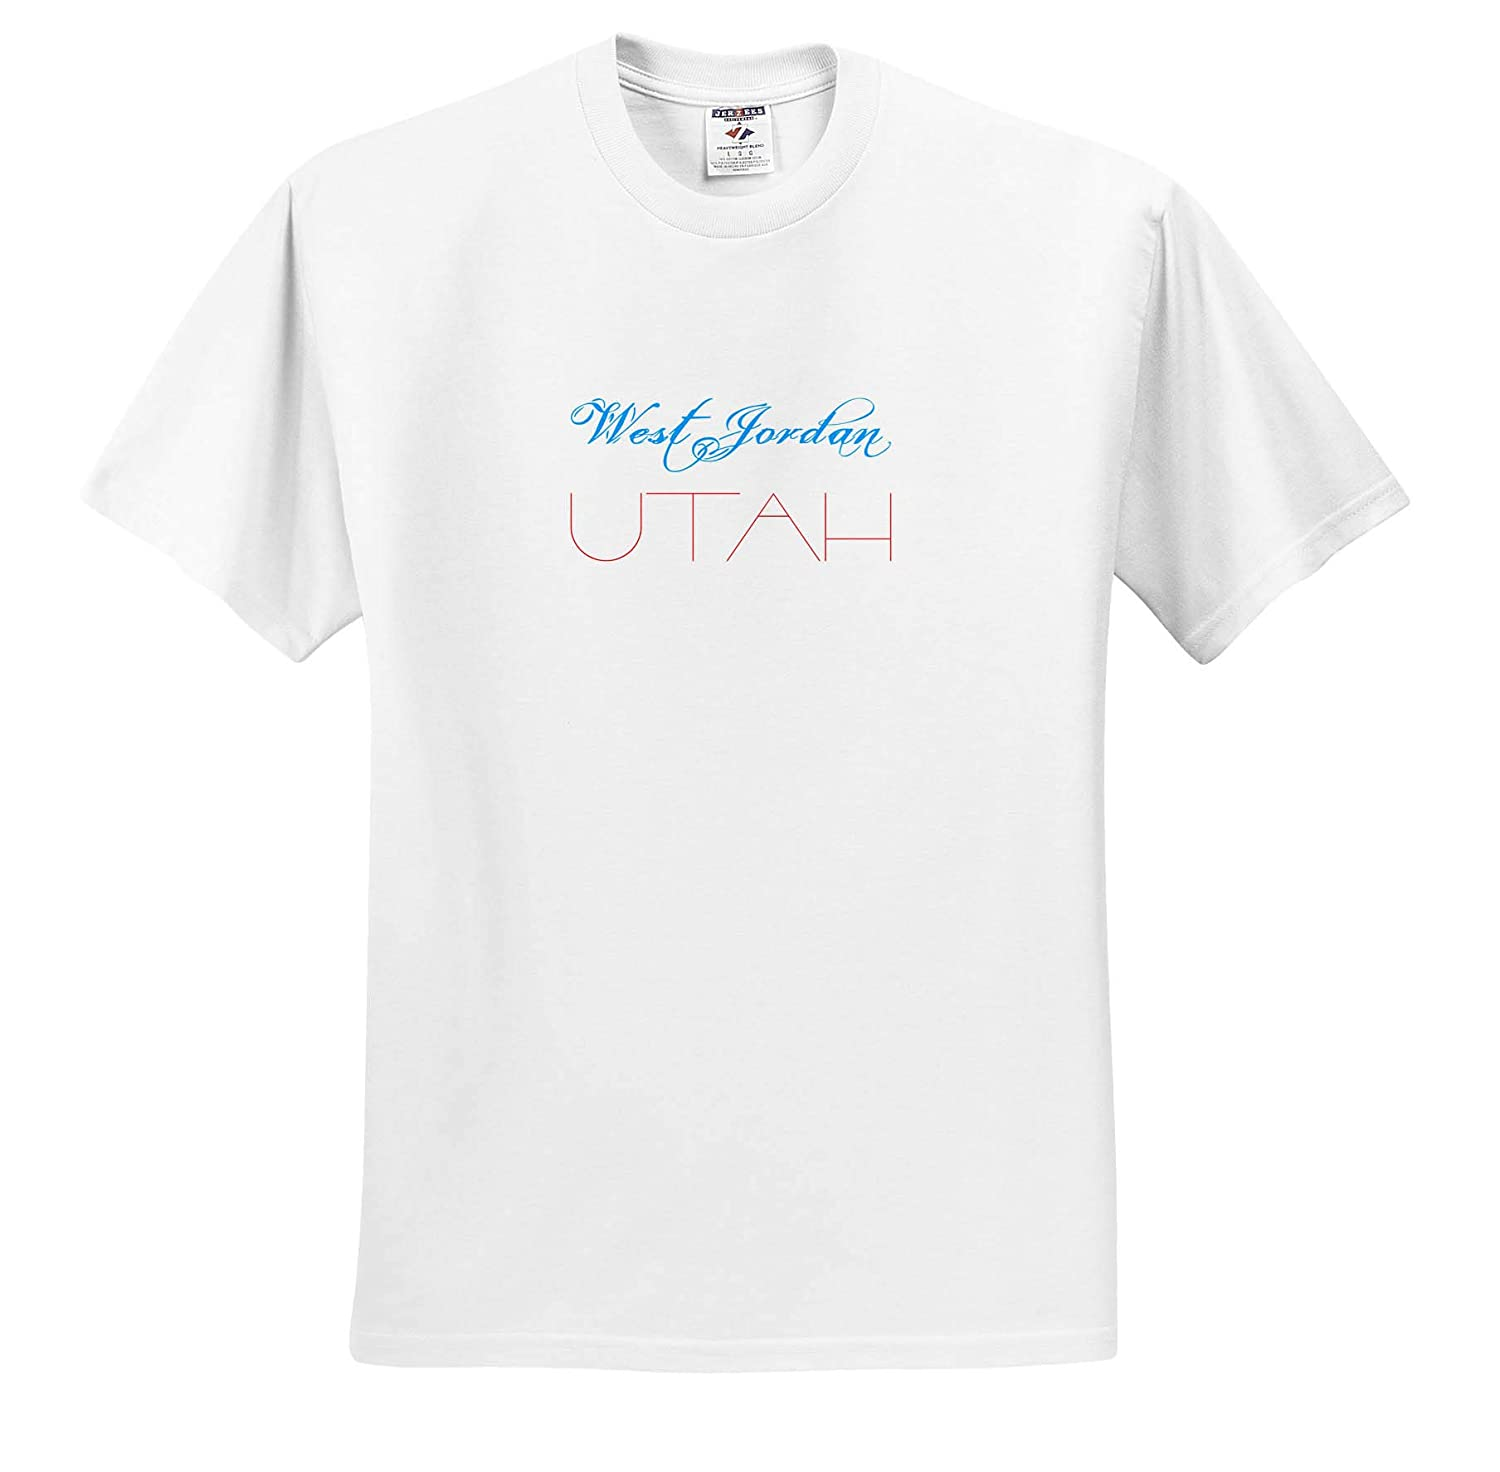 American Cities red Colors Utah Elegant Text of Blue 3dRose Alexis Design T-Shirts American Cities West Jorday